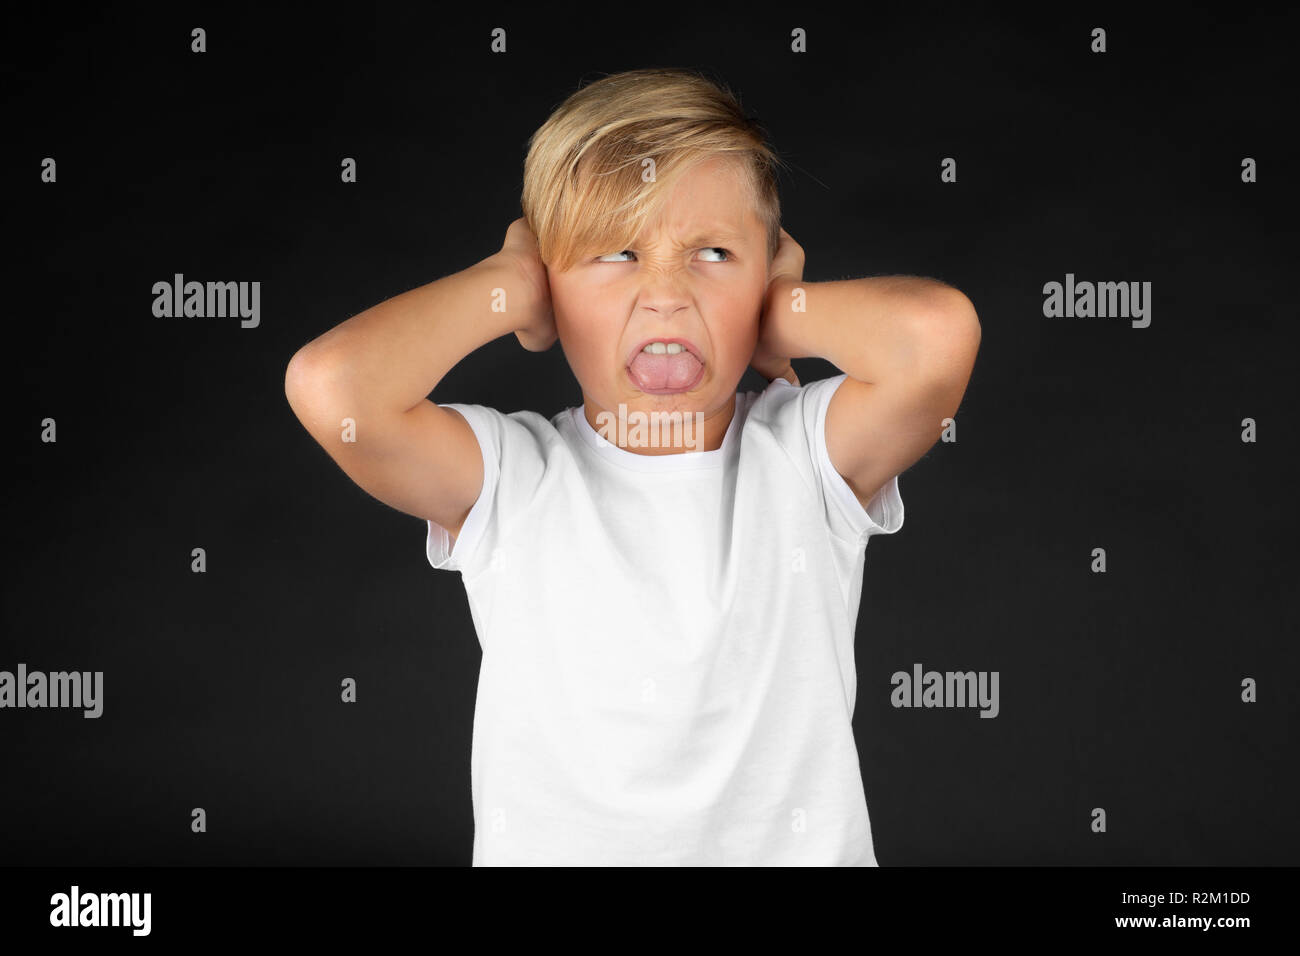 Little blond boy covers his ears and sticks out his tongue - Stock Image